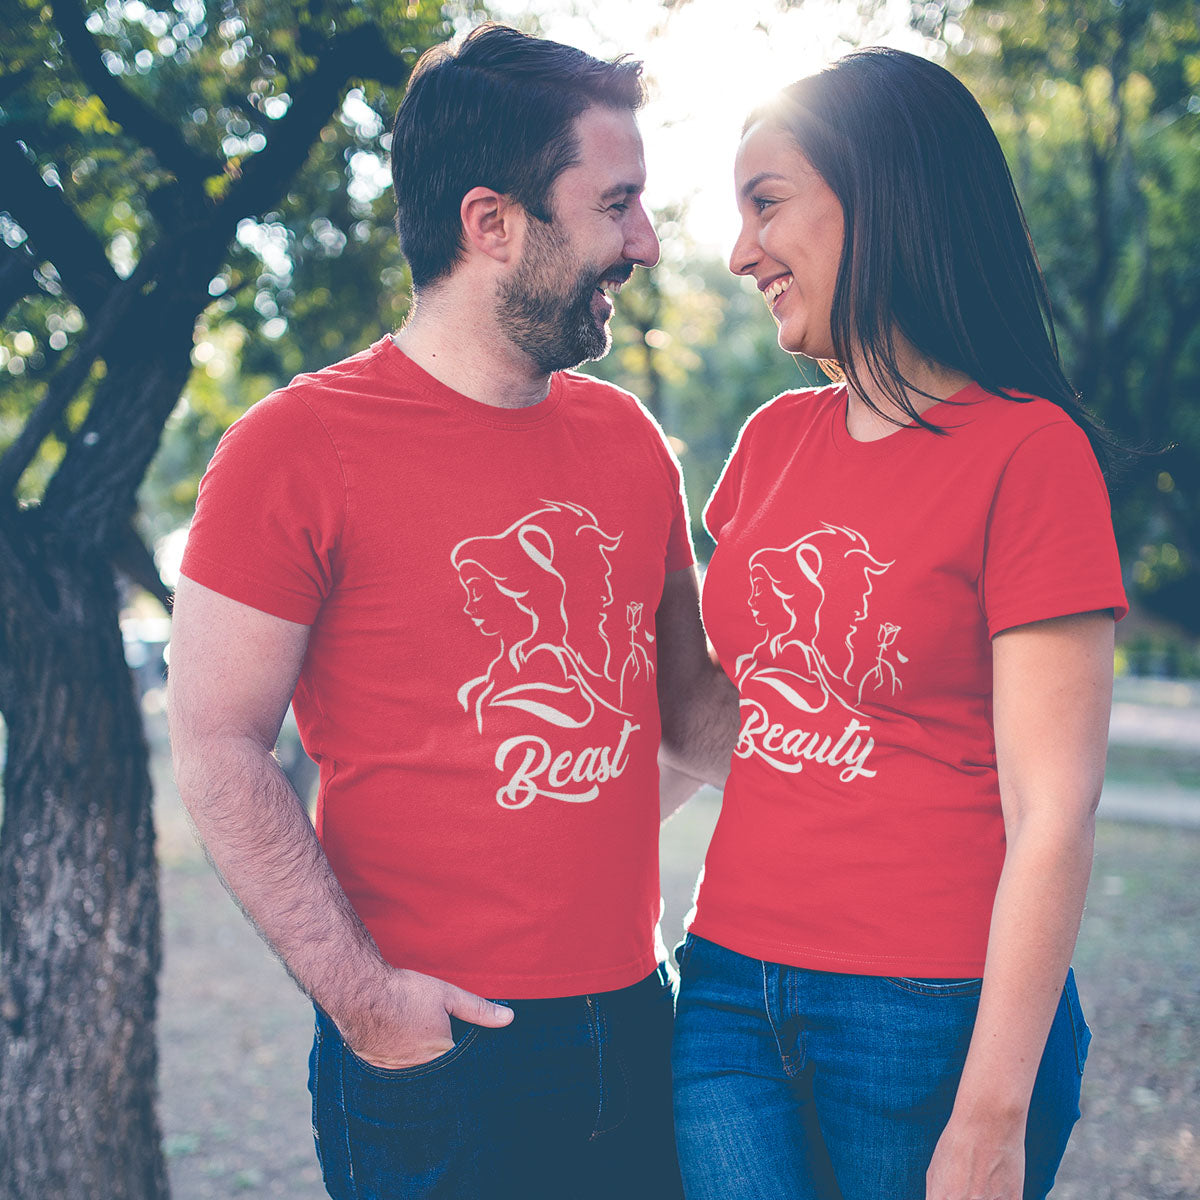 Sprinklecart Beauty and Beast Themed Couple T Shirt | Awesome Wear for Loving Couples